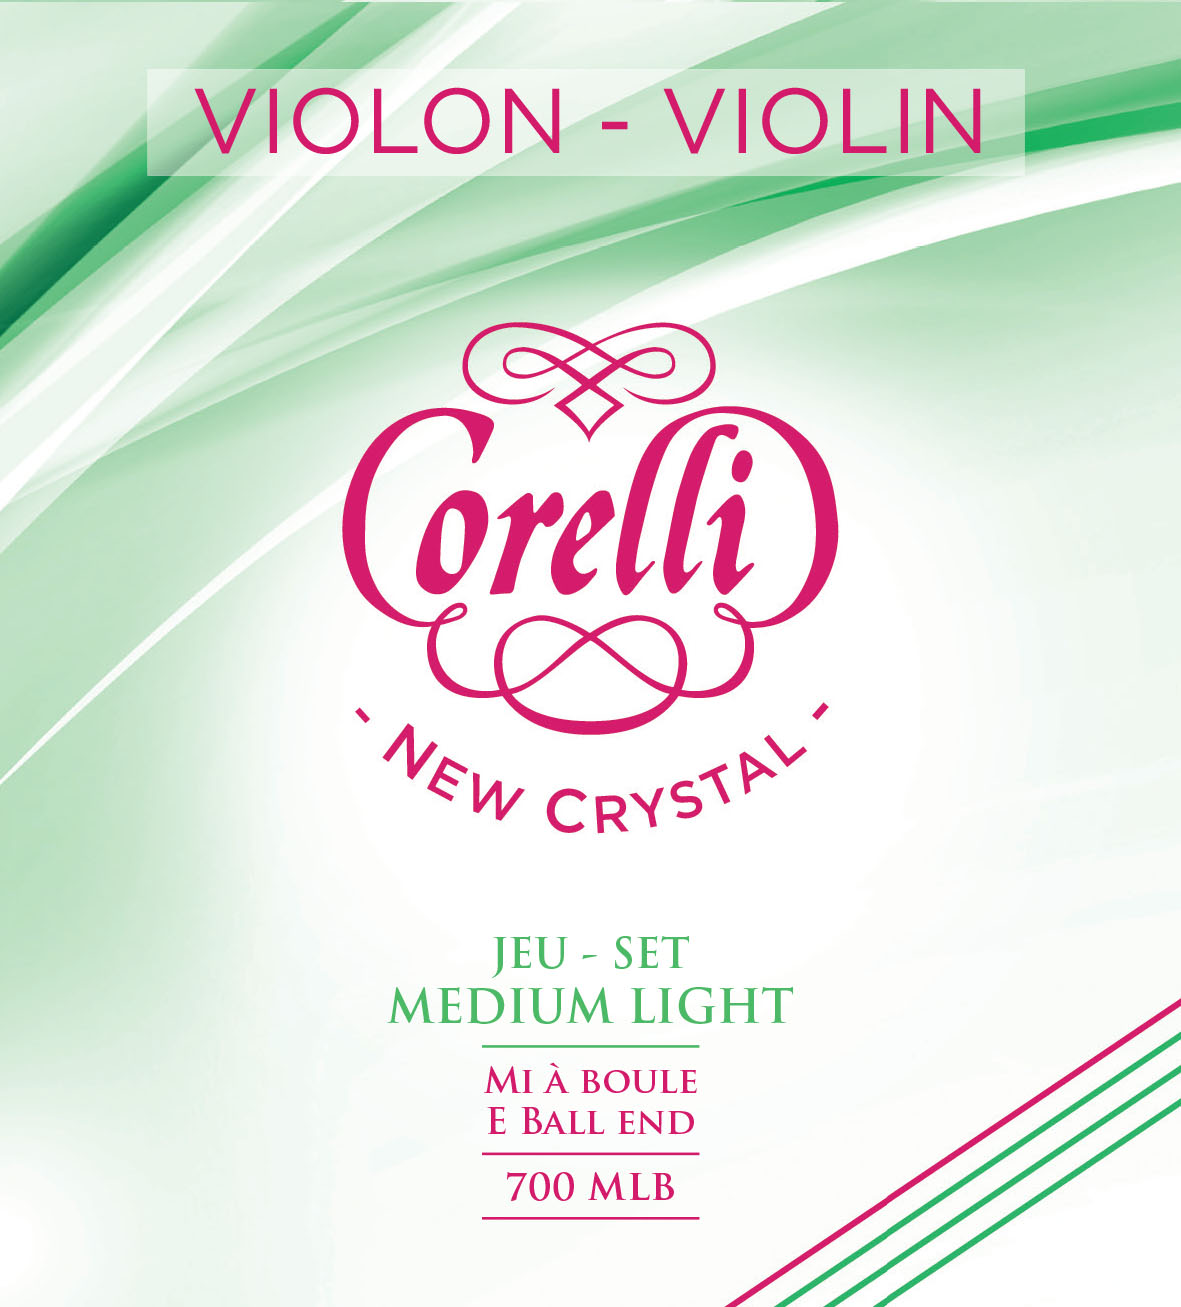 CORELLI NEW CRYSTAL MEDIUM LIGHT 700MLB Violon